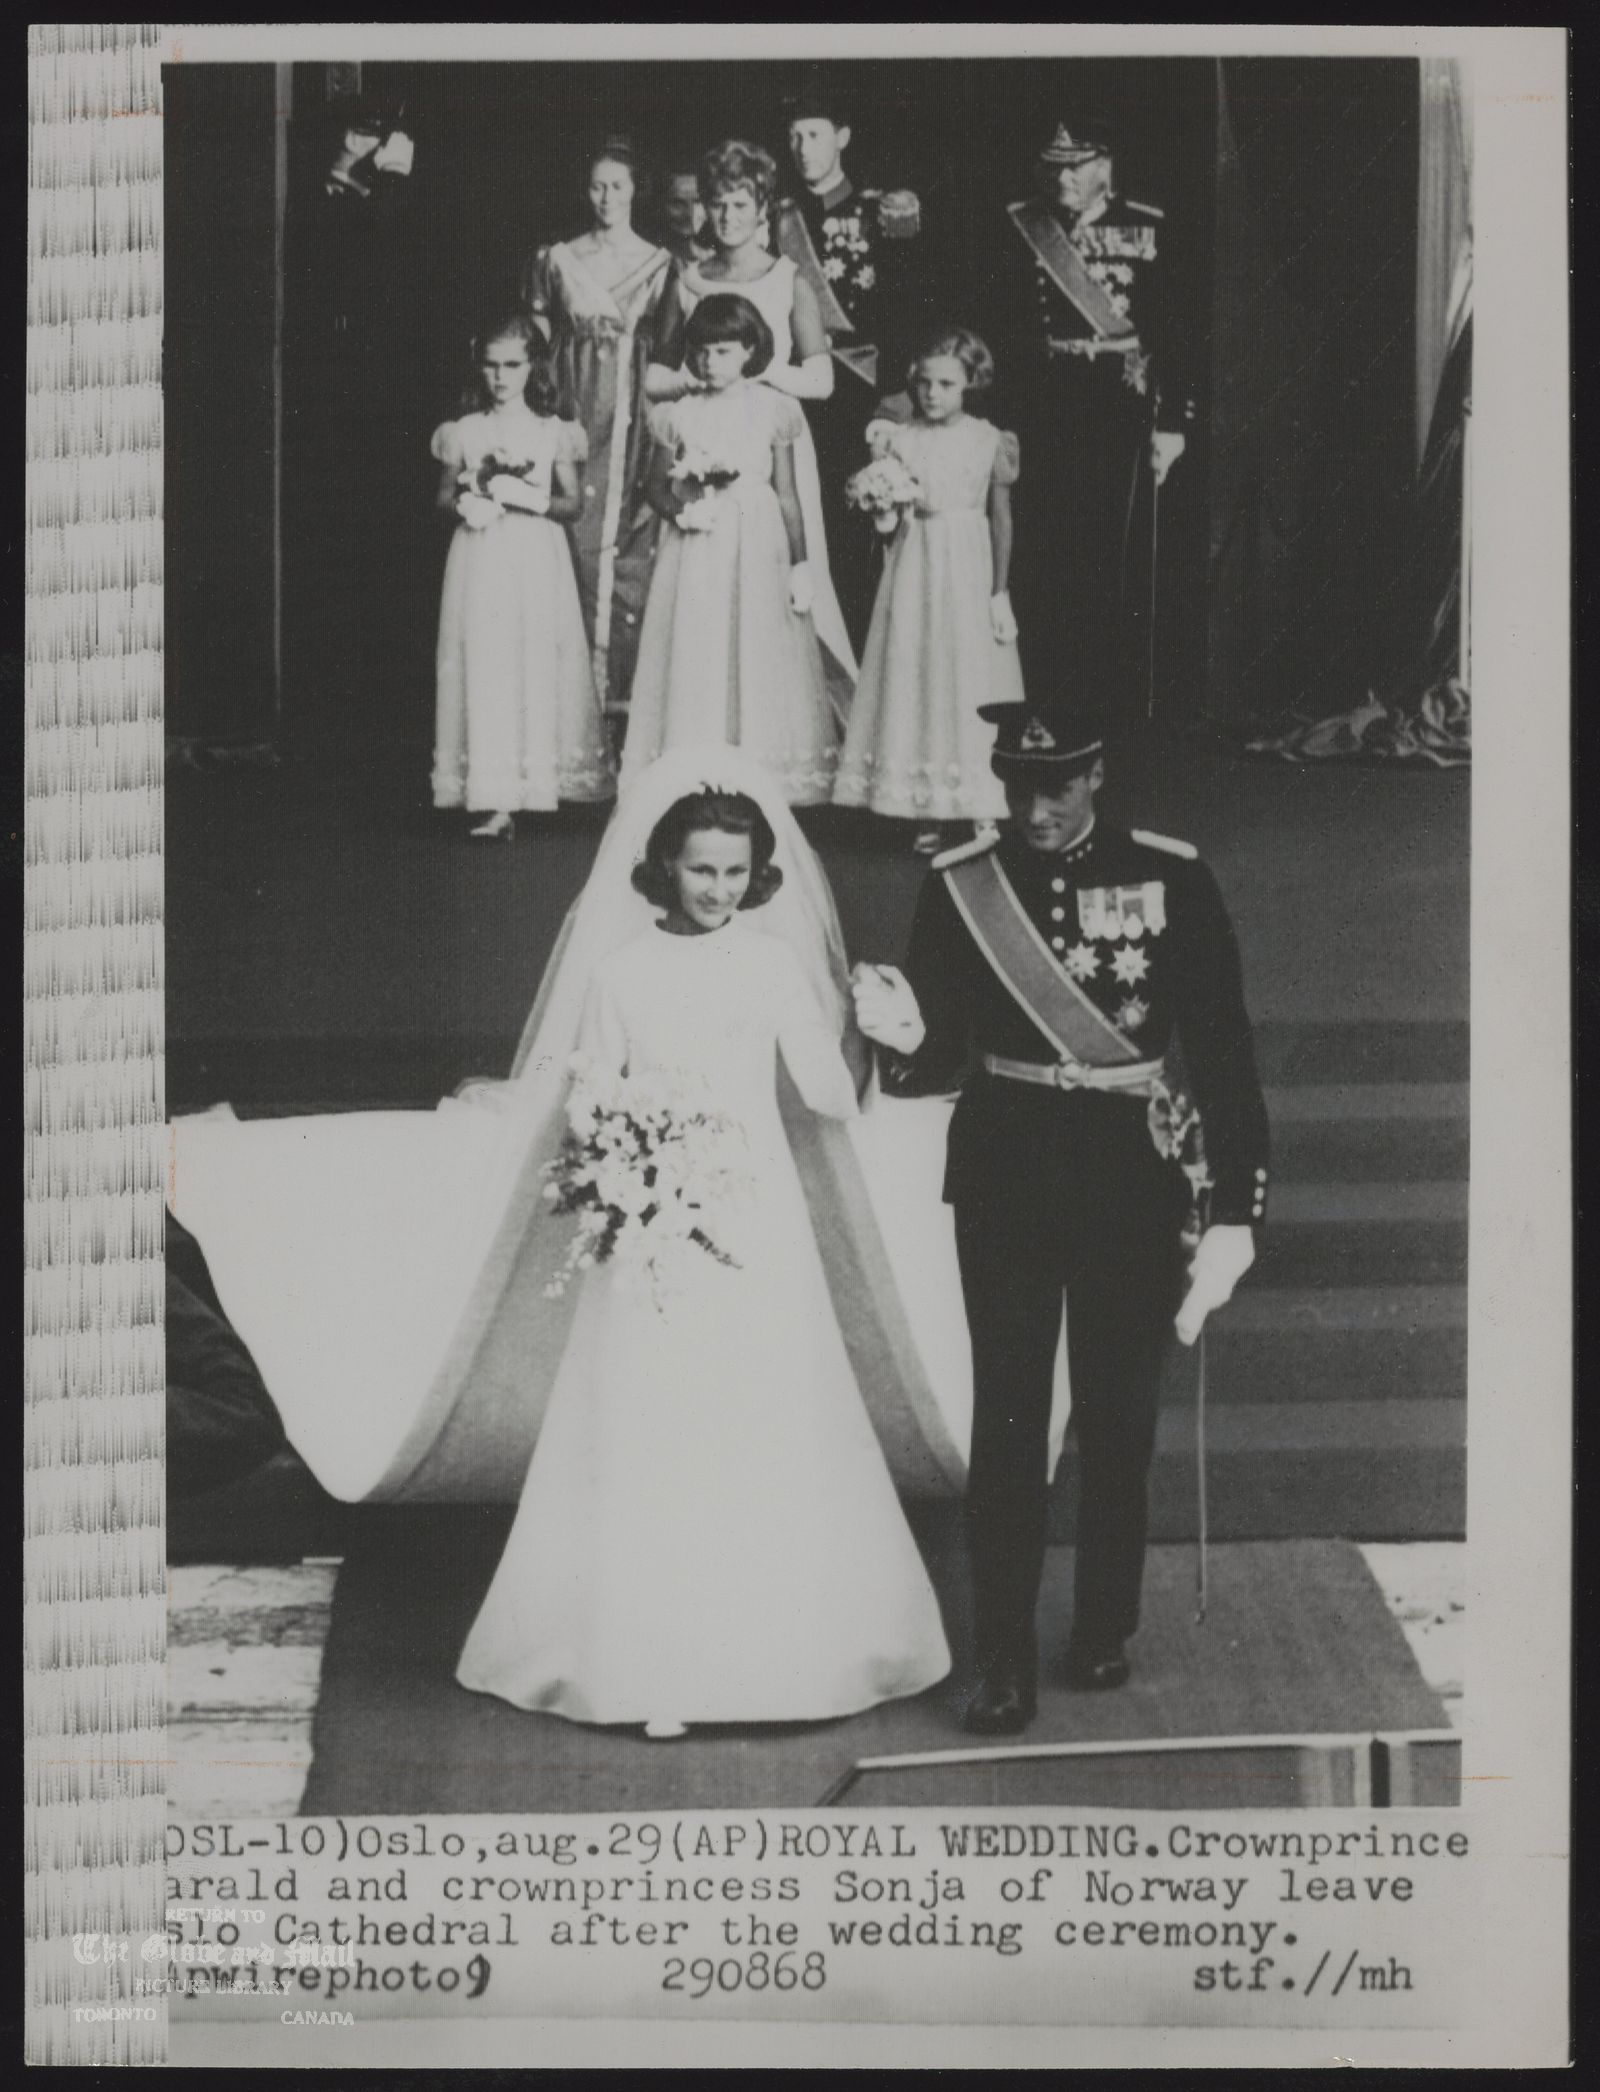 ROYAL FAMILY Norway Prince Harald (OSL-10)Oslo, Aug. 29. 1968 (AP) ROYAL WEDDING -- Crown Prince Harald and Crown Princess Sonja of Norway leave Oslo Cathedral after the wedding ceremony.